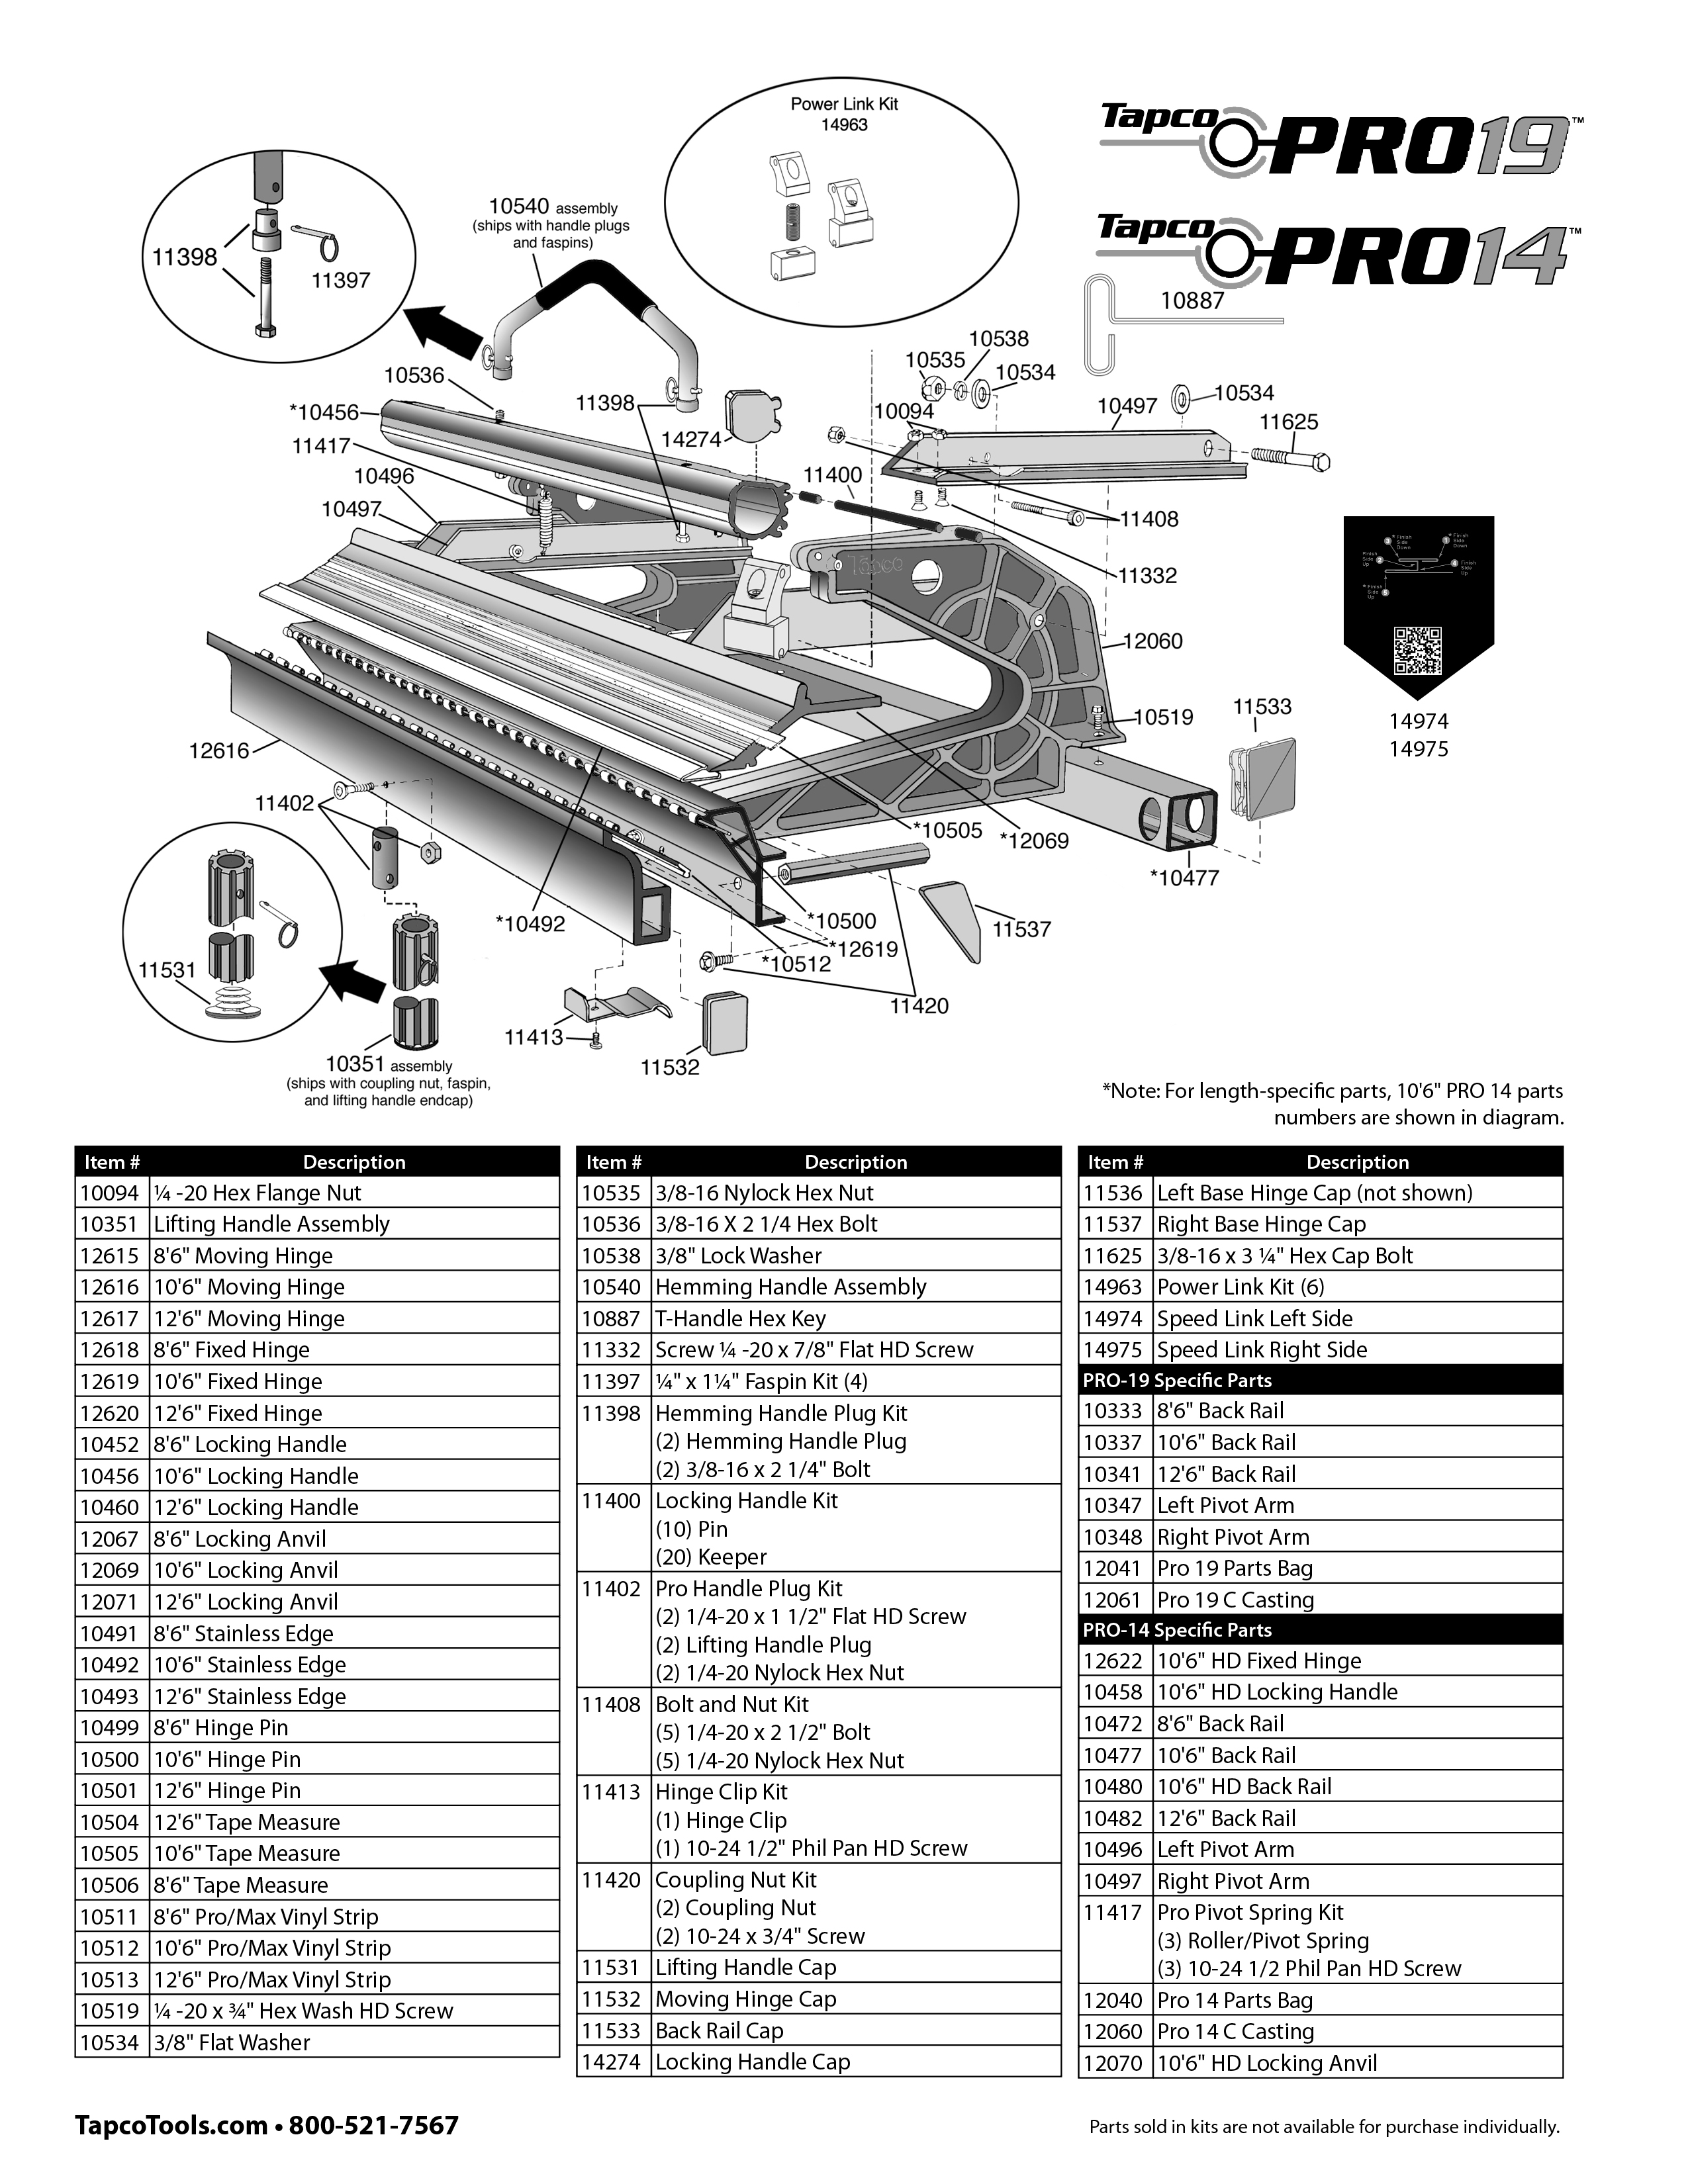 Tapco Pro 19 Replacement Parts From Buymbs Com